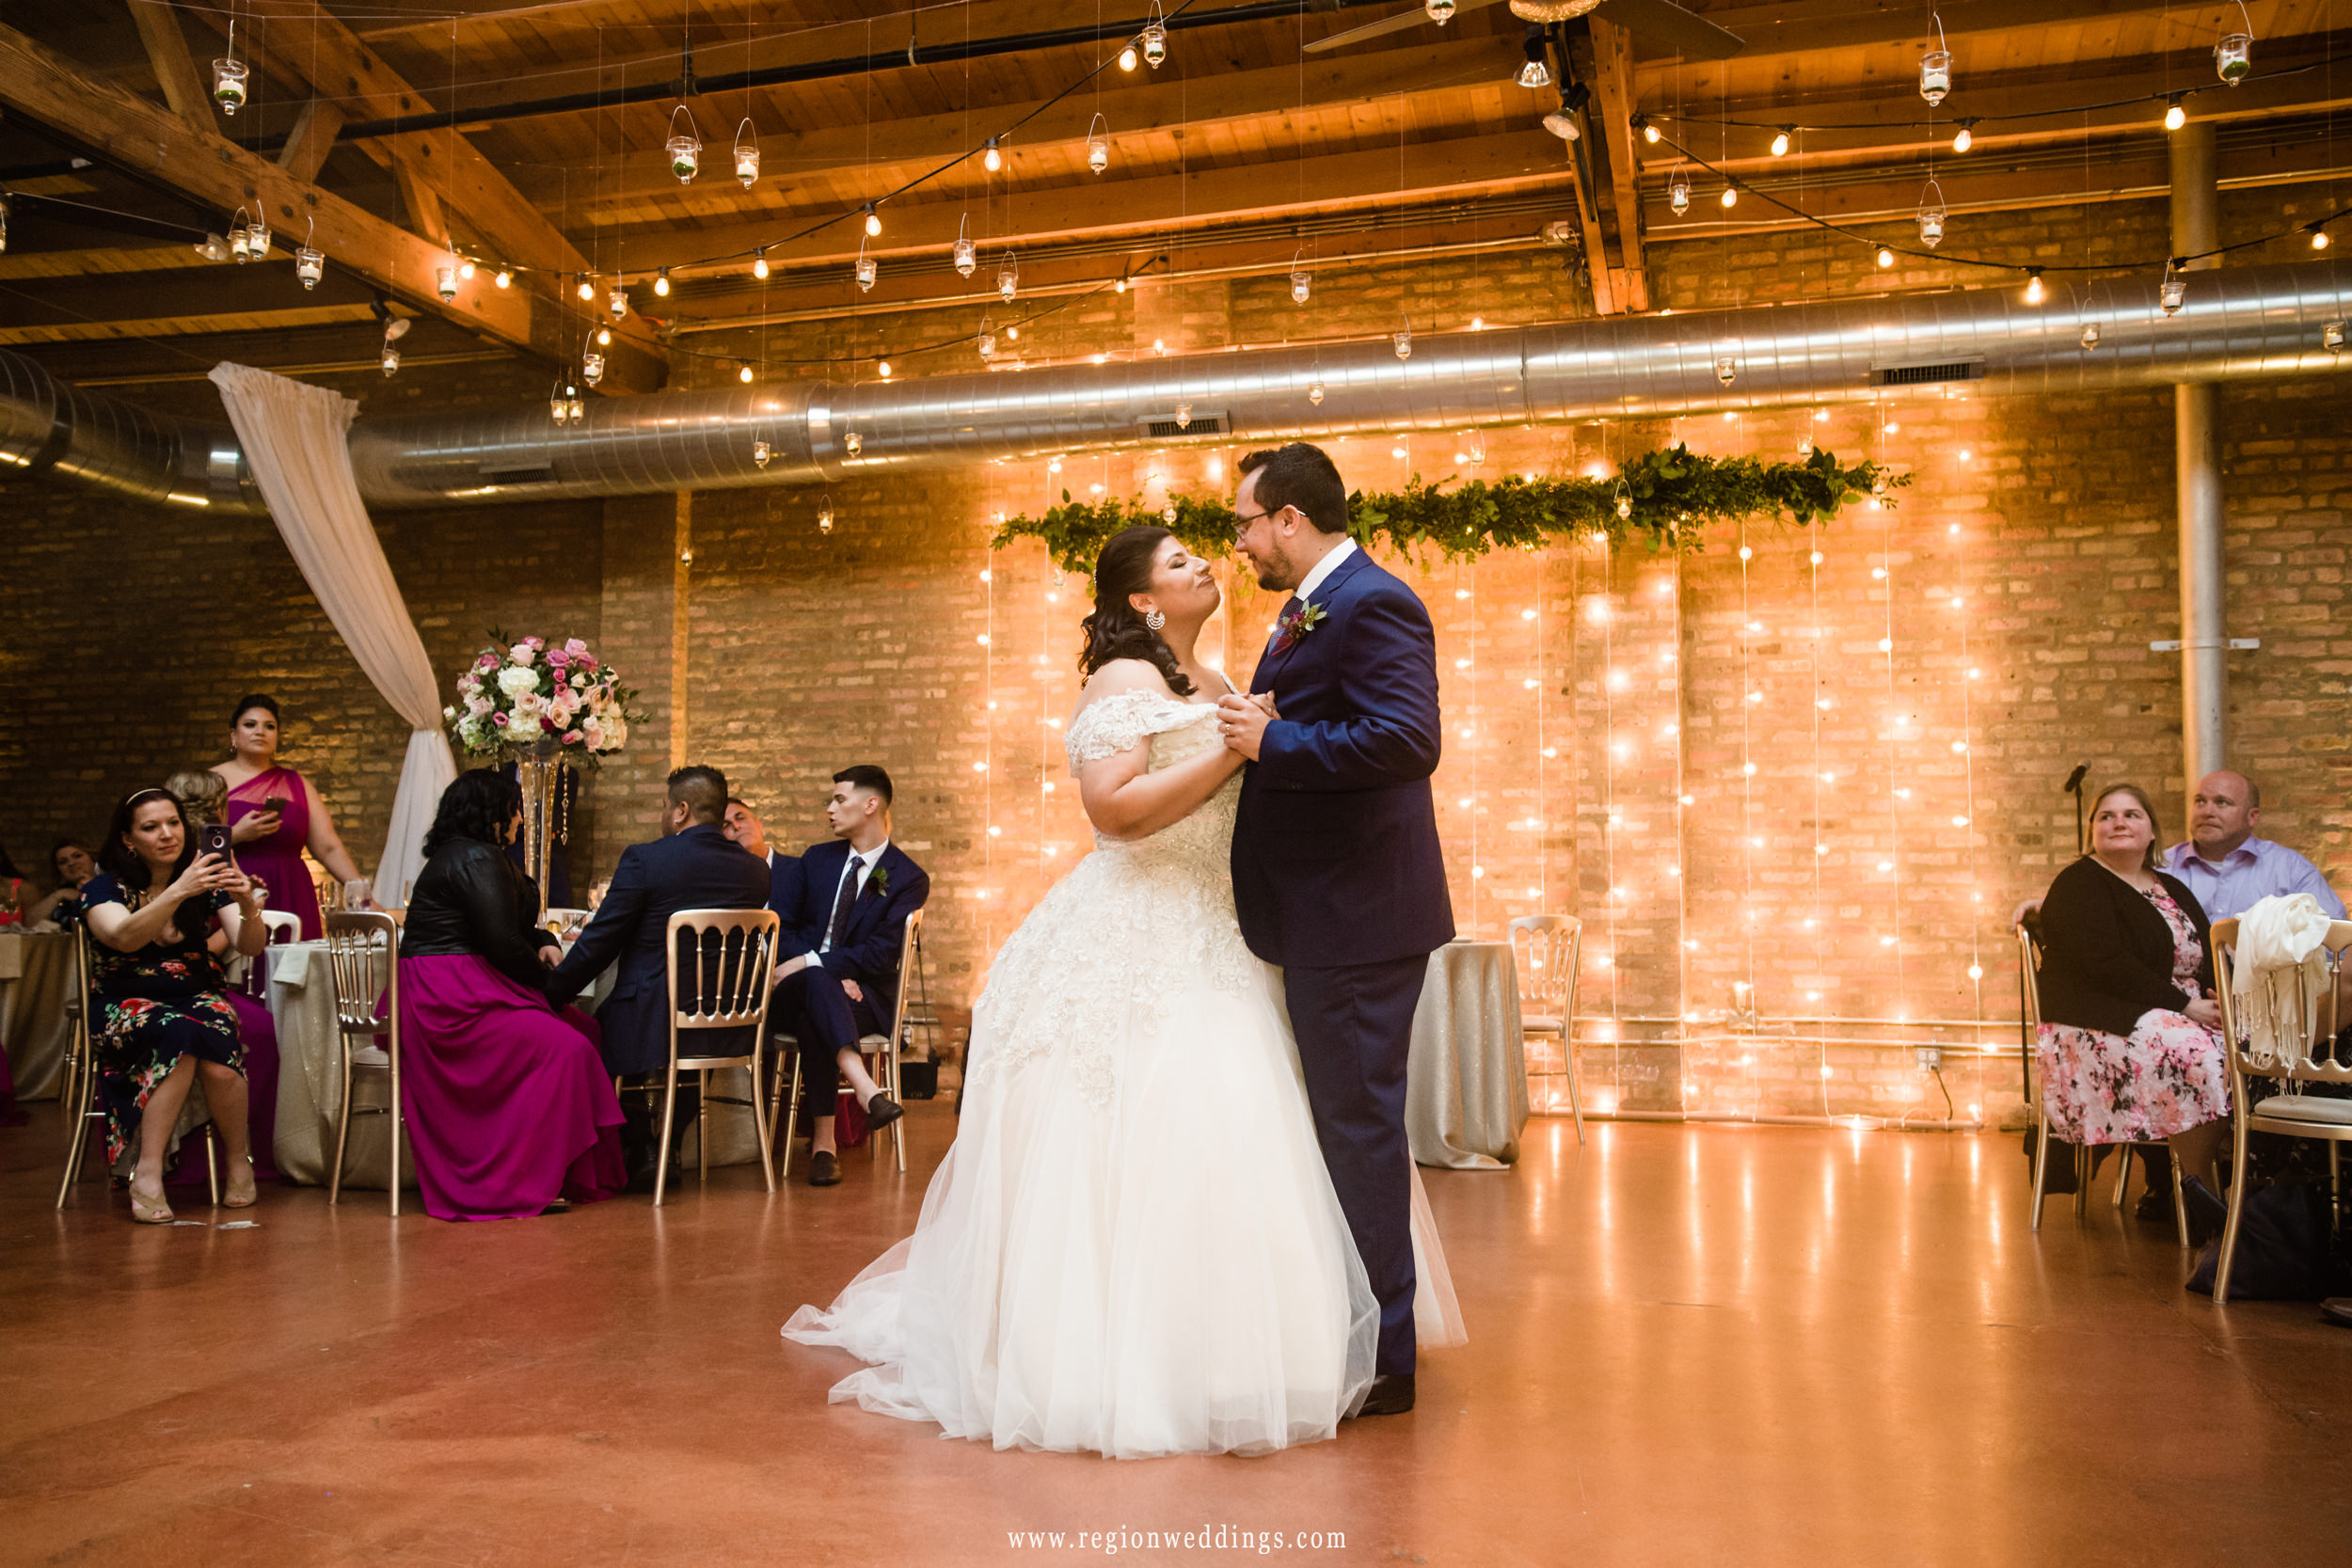 First dance for the bride and groom at Loft On Lake wedding venue in Chicago.